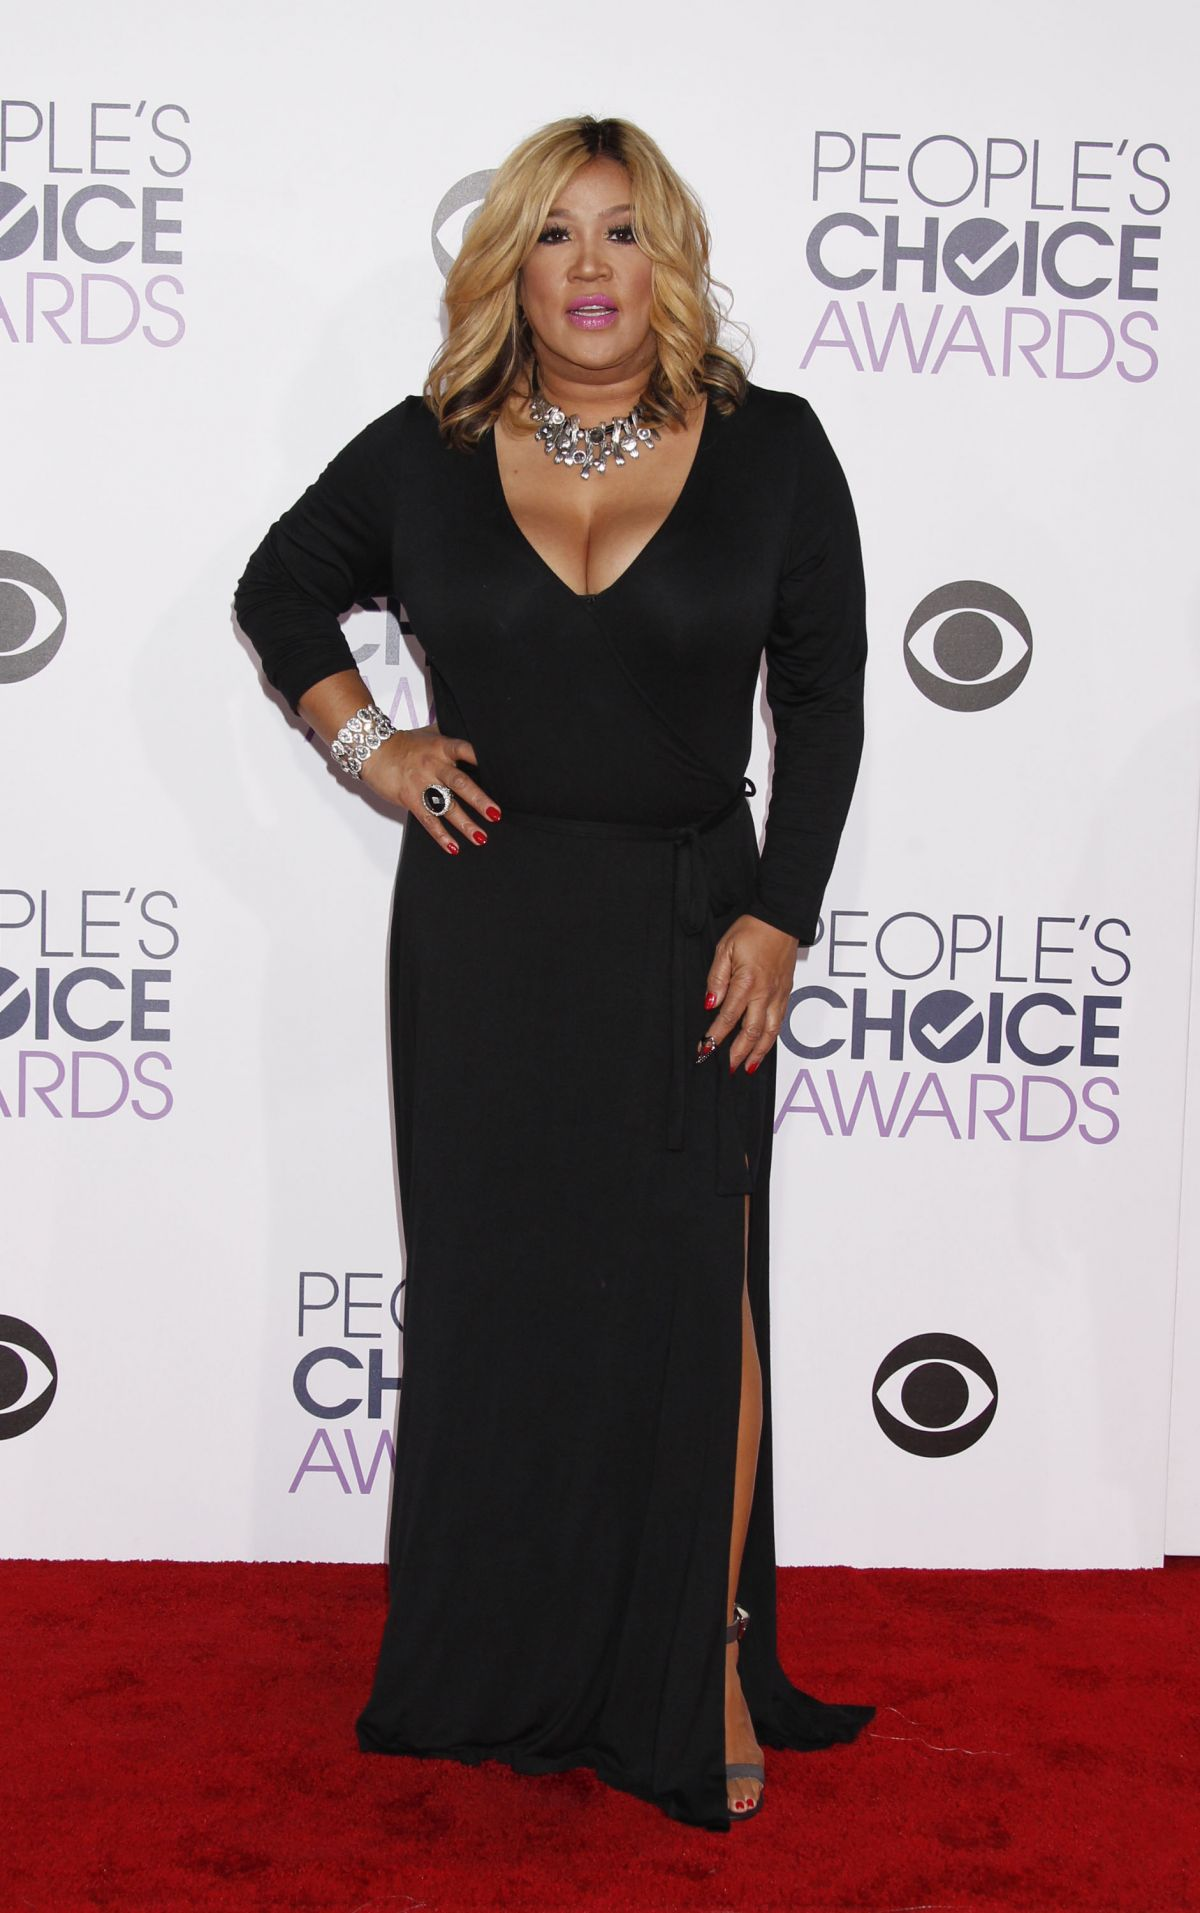 KYM WHITLEY at 2016 People's Choice Awards in Los Angeles 01/06/2016